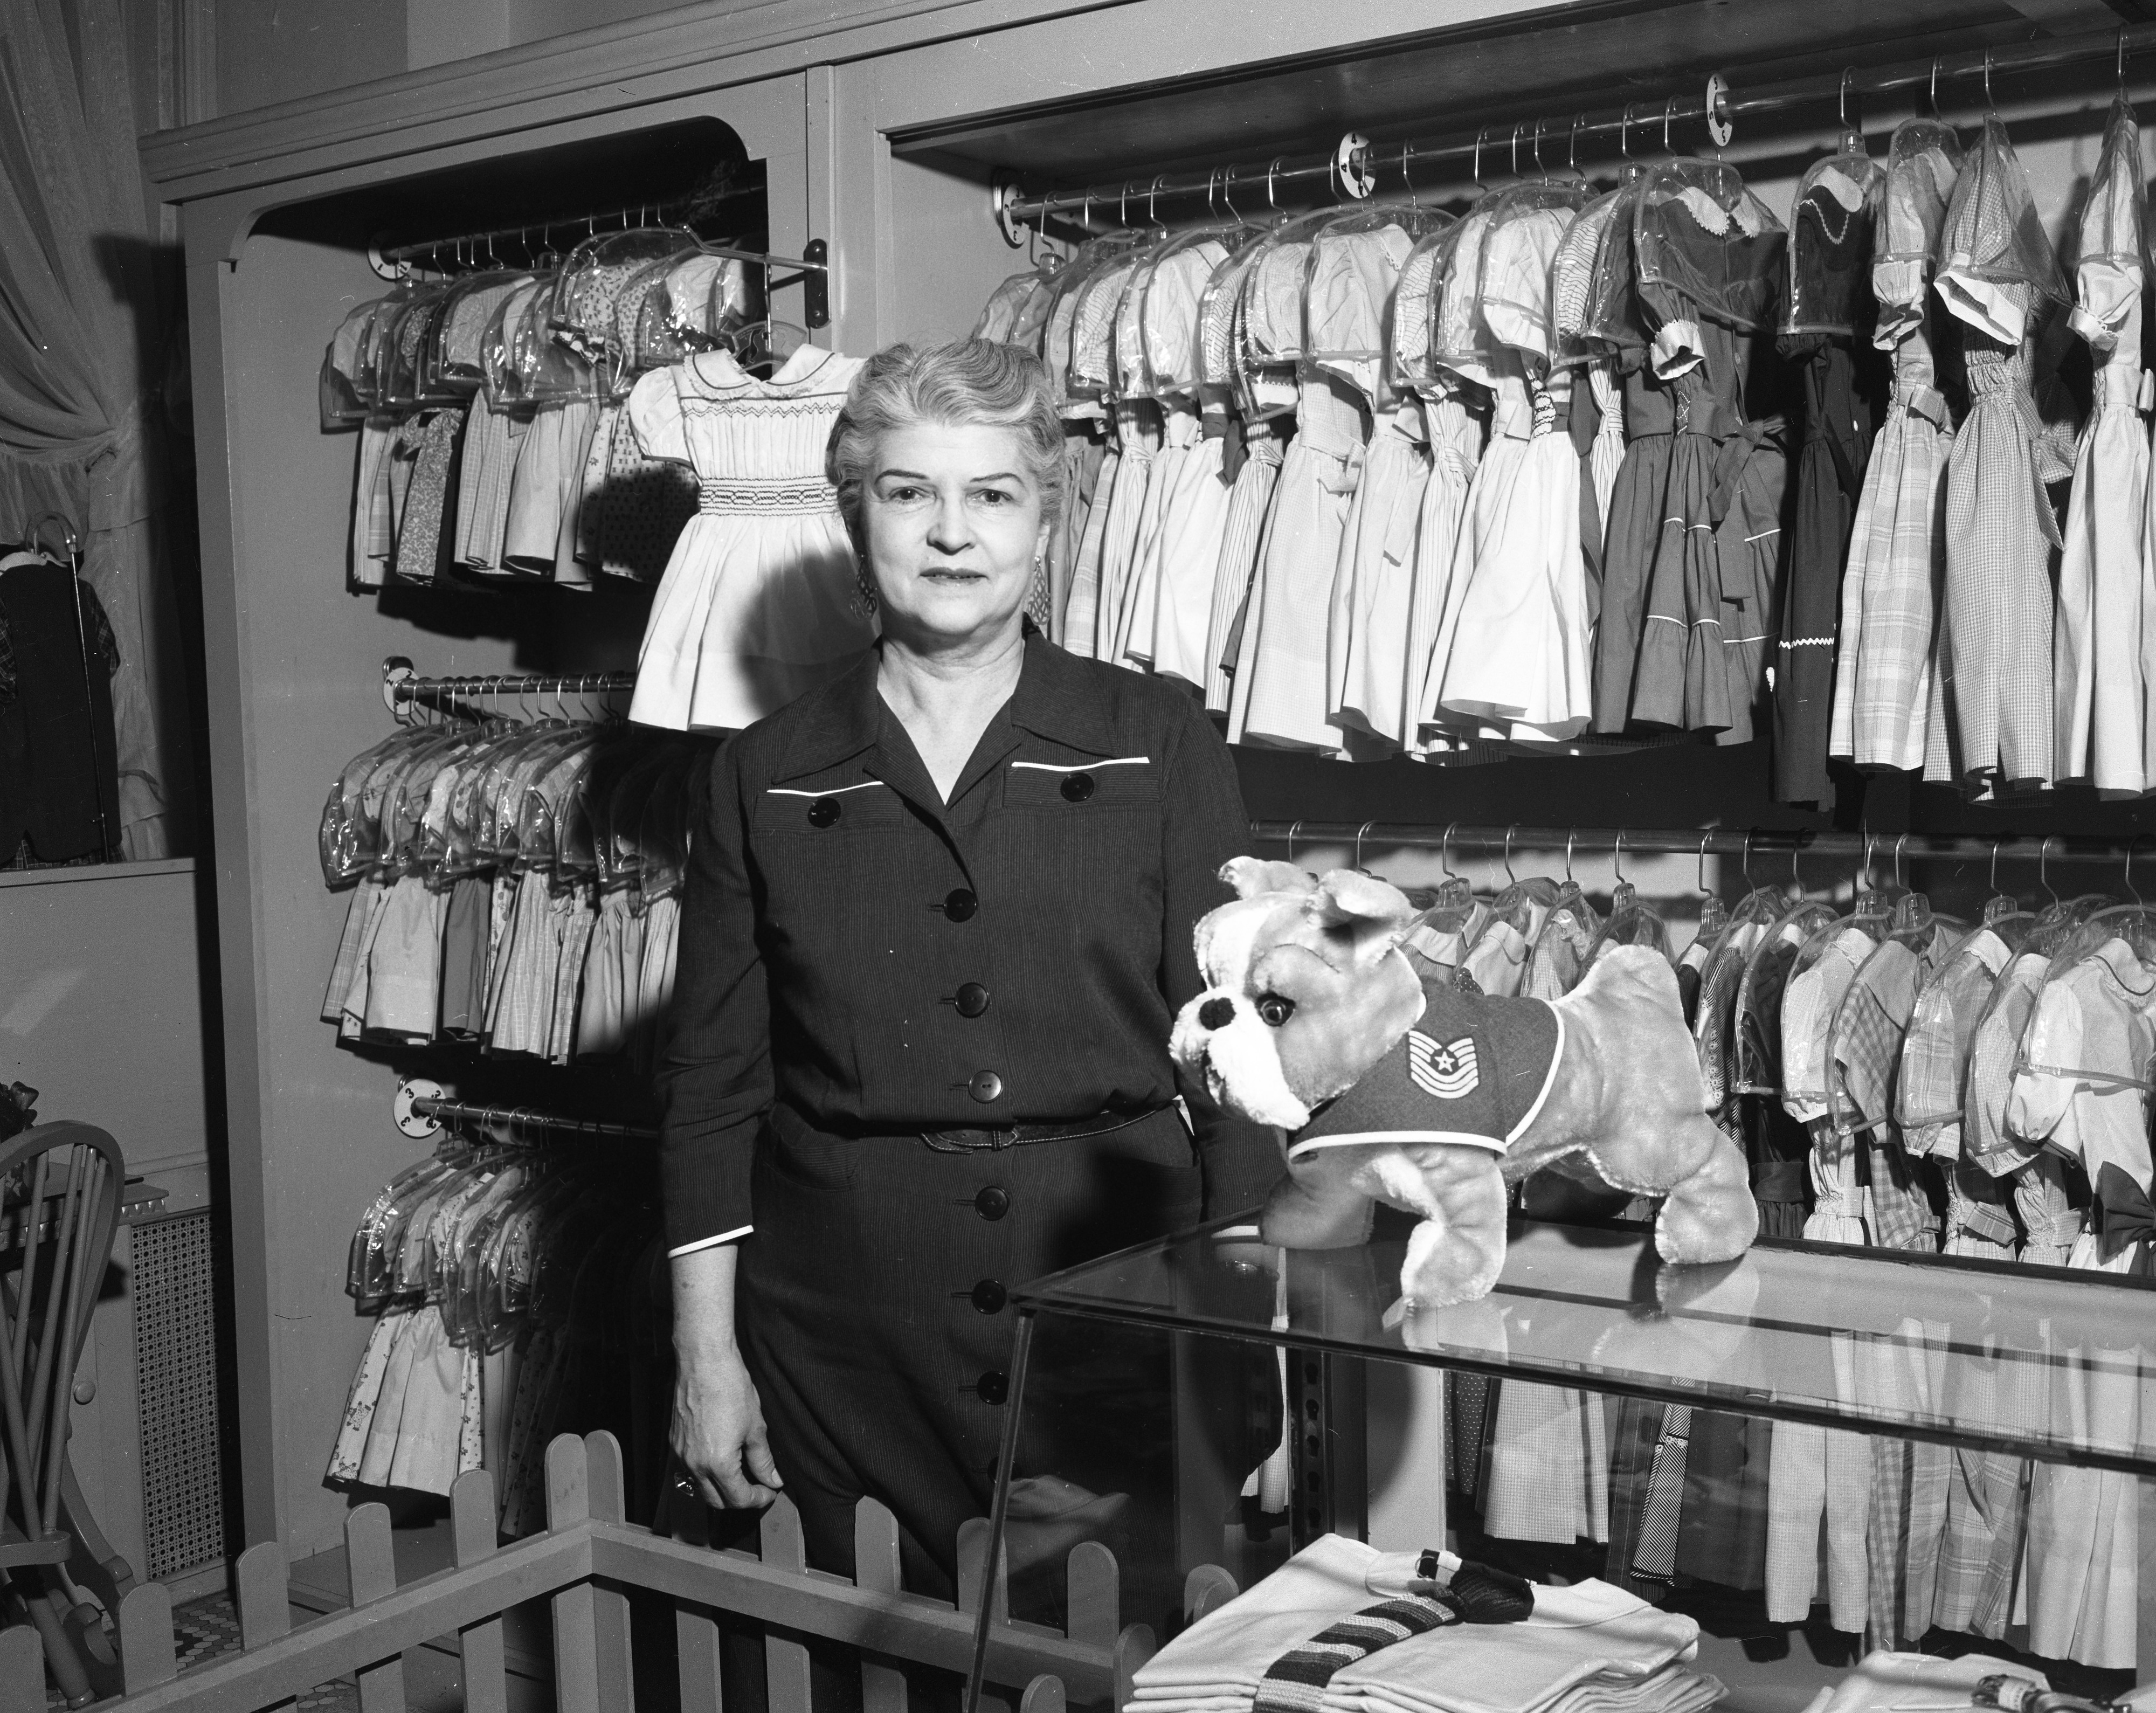 Bee Nickels Shop Owner Beatrice Nickels, Niece of Nickels Arcade Builder Tom Nickels, January 1957 image